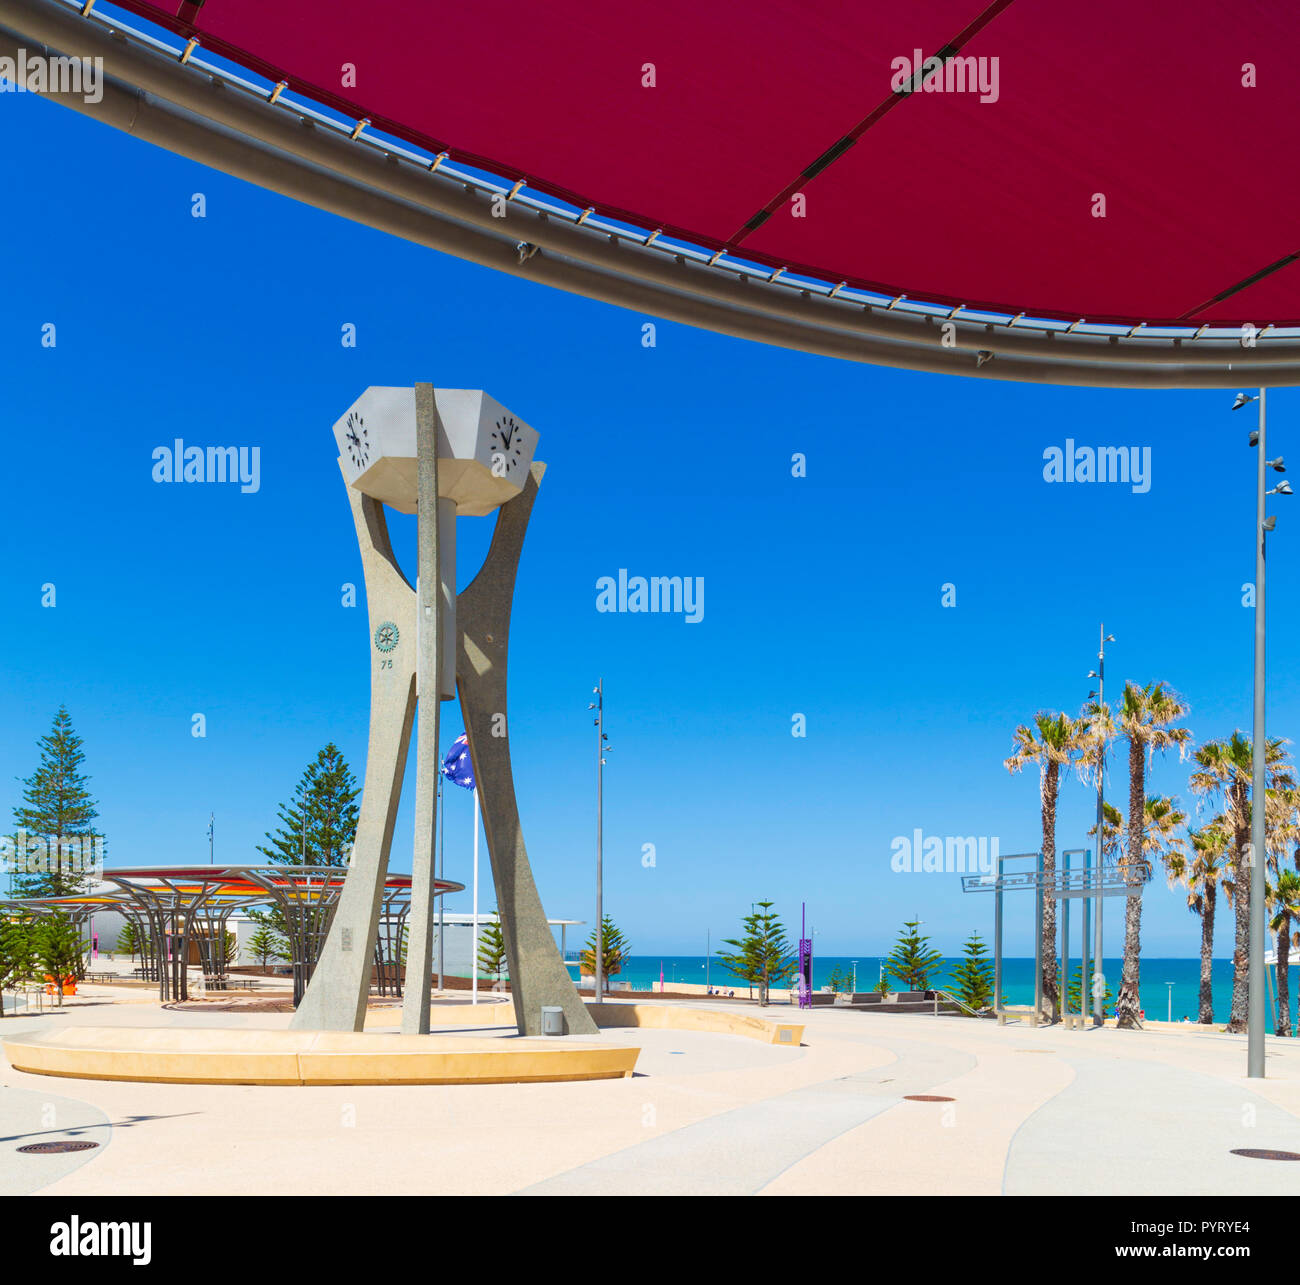 The Rotary Clock Tower and Scarborough Beach promenade in the new Scarborough Beach redevelopment. , Perth, Western Australia - Stock Image